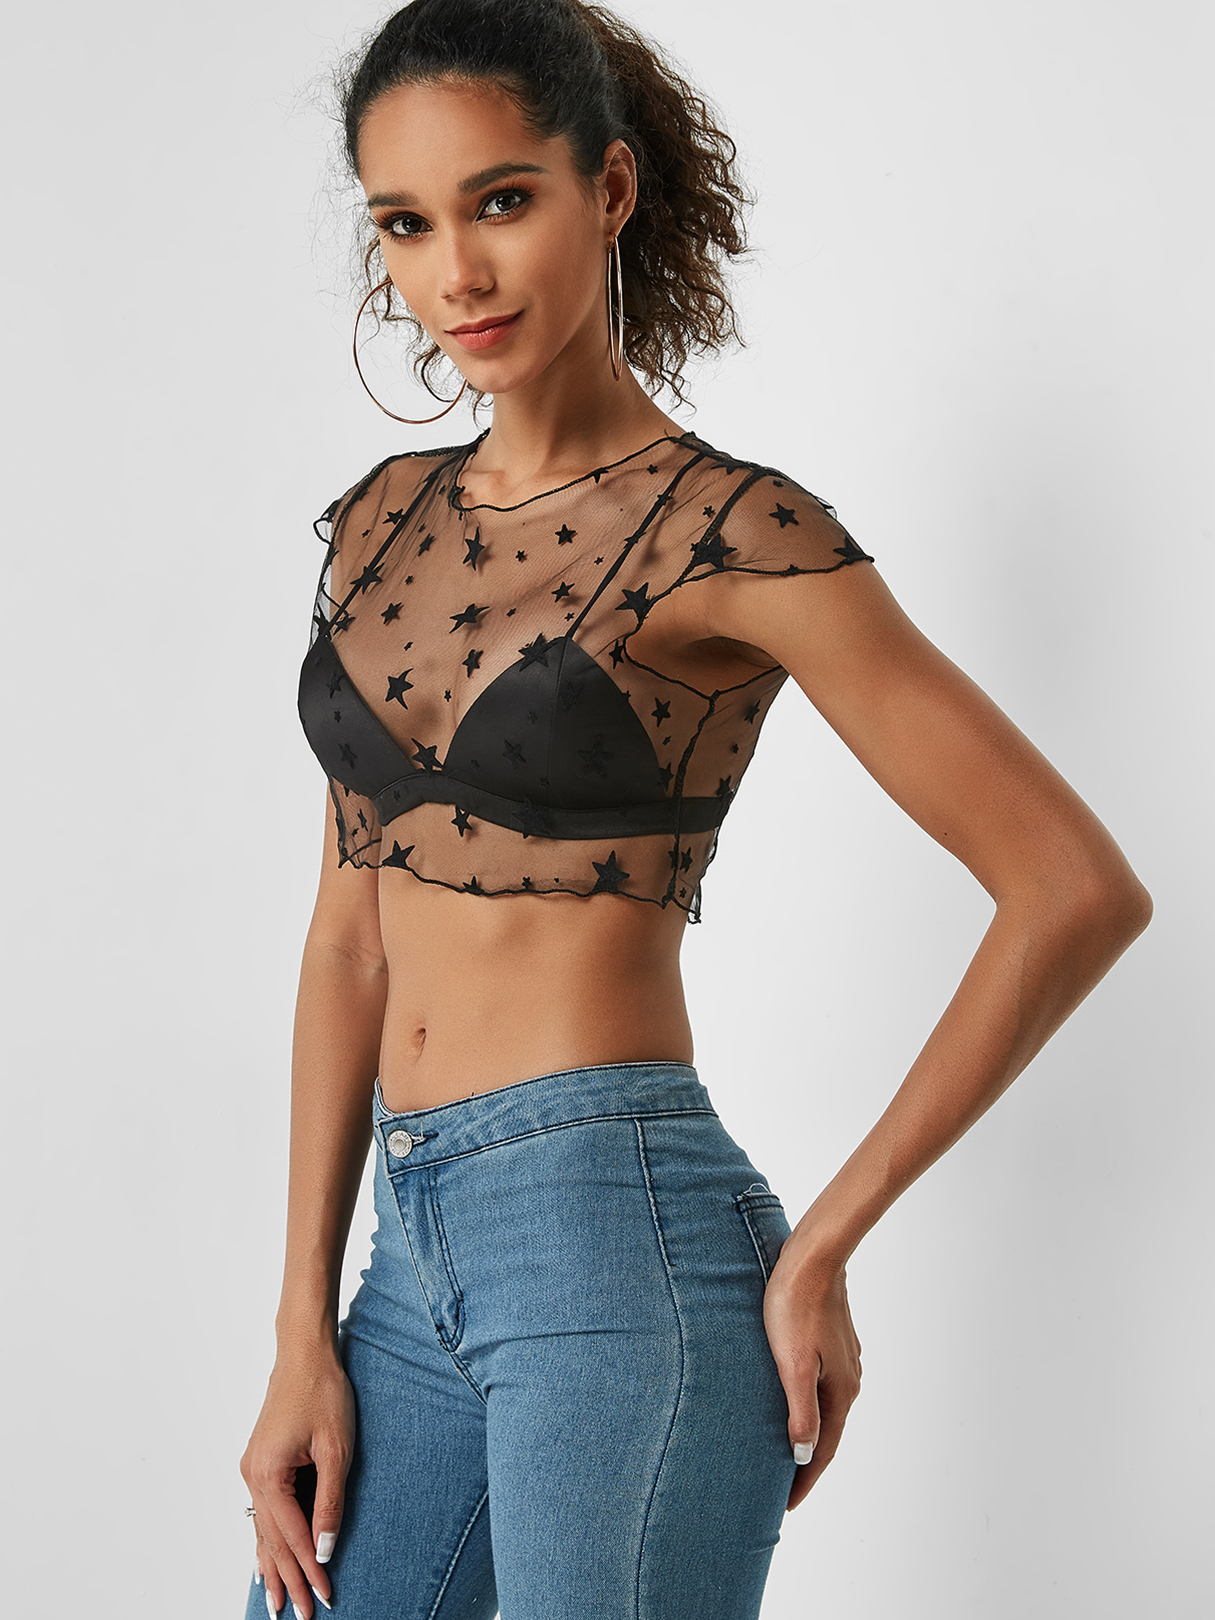 Crop top noir transparent TOPS Noir Tops courts xs|s|m Yoins